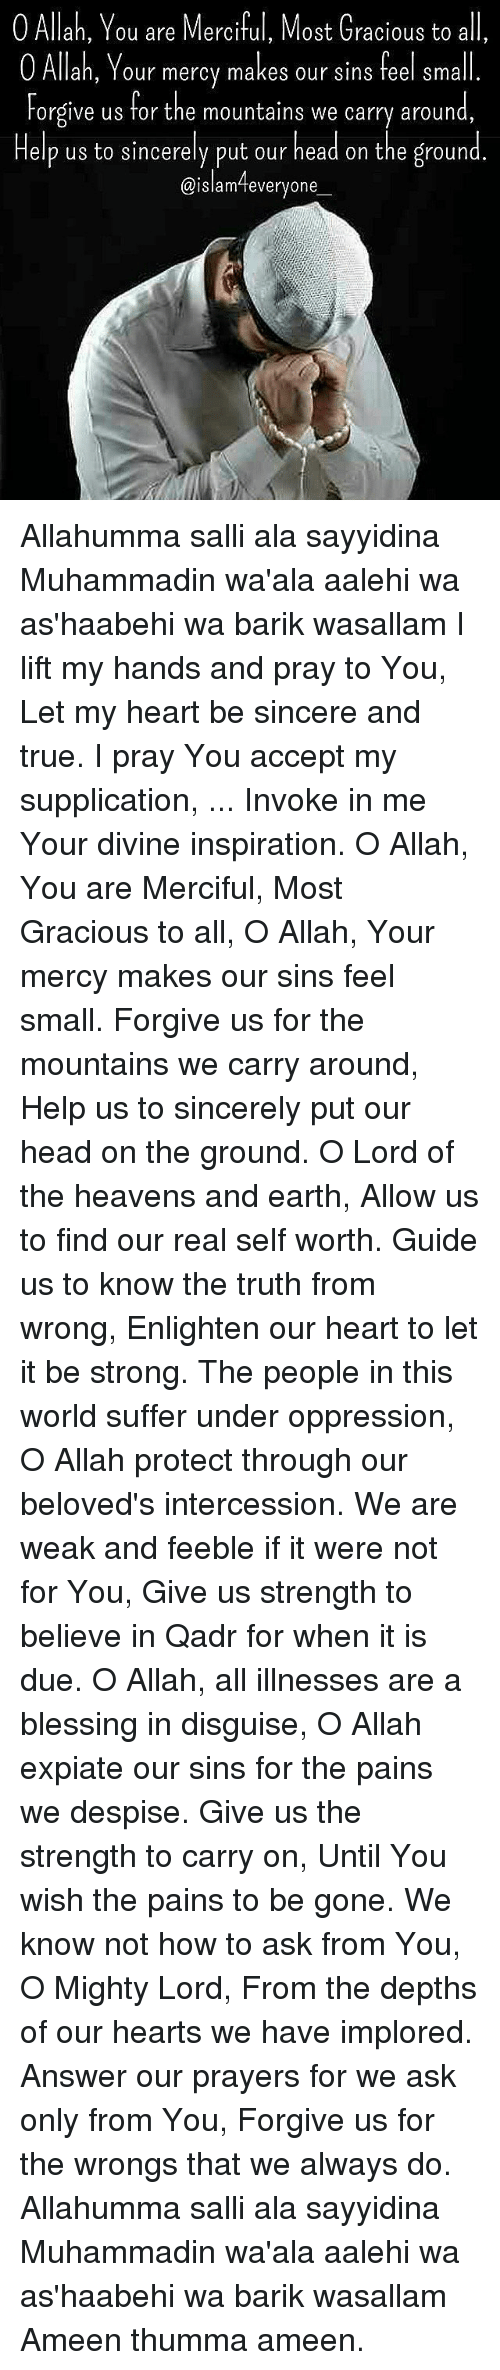 gracious: 0 Allah, You are Merciful, Most Gracious to all,  O Allah, Your mercy makes our sins feel small  Forgive us for the mountains we carry around  Help us to sincerely put our head on the ground  @islam everyone Allahumma salli ala sayyidina Muhammadin wa'ala aalehi wa as'haabehi wa barik wasallam I lift my hands and pray to You, Let my heart be sincere and true. I pray You accept my supplication, ... Invoke in me Your divine inspiration. O Allah, You are Merciful, Most Gracious to all, O Allah, Your mercy makes our sins feel small. Forgive us for the mountains we carry around, Help us to sincerely put our head on the ground. O Lord of the heavens and earth, Allow us to find our real self worth. Guide us to know the truth from wrong, Enlighten our heart to let it be strong. The people in this world suffer under oppression, O Allah protect through our beloved's intercession. We are weak and feeble if it were not for You, Give us strength to believe in Qadr for when it is due. O Allah, all illnesses are a blessing in disguise, O Allah expiate our sins for the pains we despise. Give us the strength to carry on, Until You wish the pains to be gone. We know not how to ask from You, O Mighty Lord, From the depths of our hearts we have implored. Answer our prayers for we ask only from You, Forgive us for the wrongs that we always do. Allahumma salli ala sayyidina Muhammadin wa'ala aalehi wa as'haabehi wa barik wasallam Ameen thumma ameen.